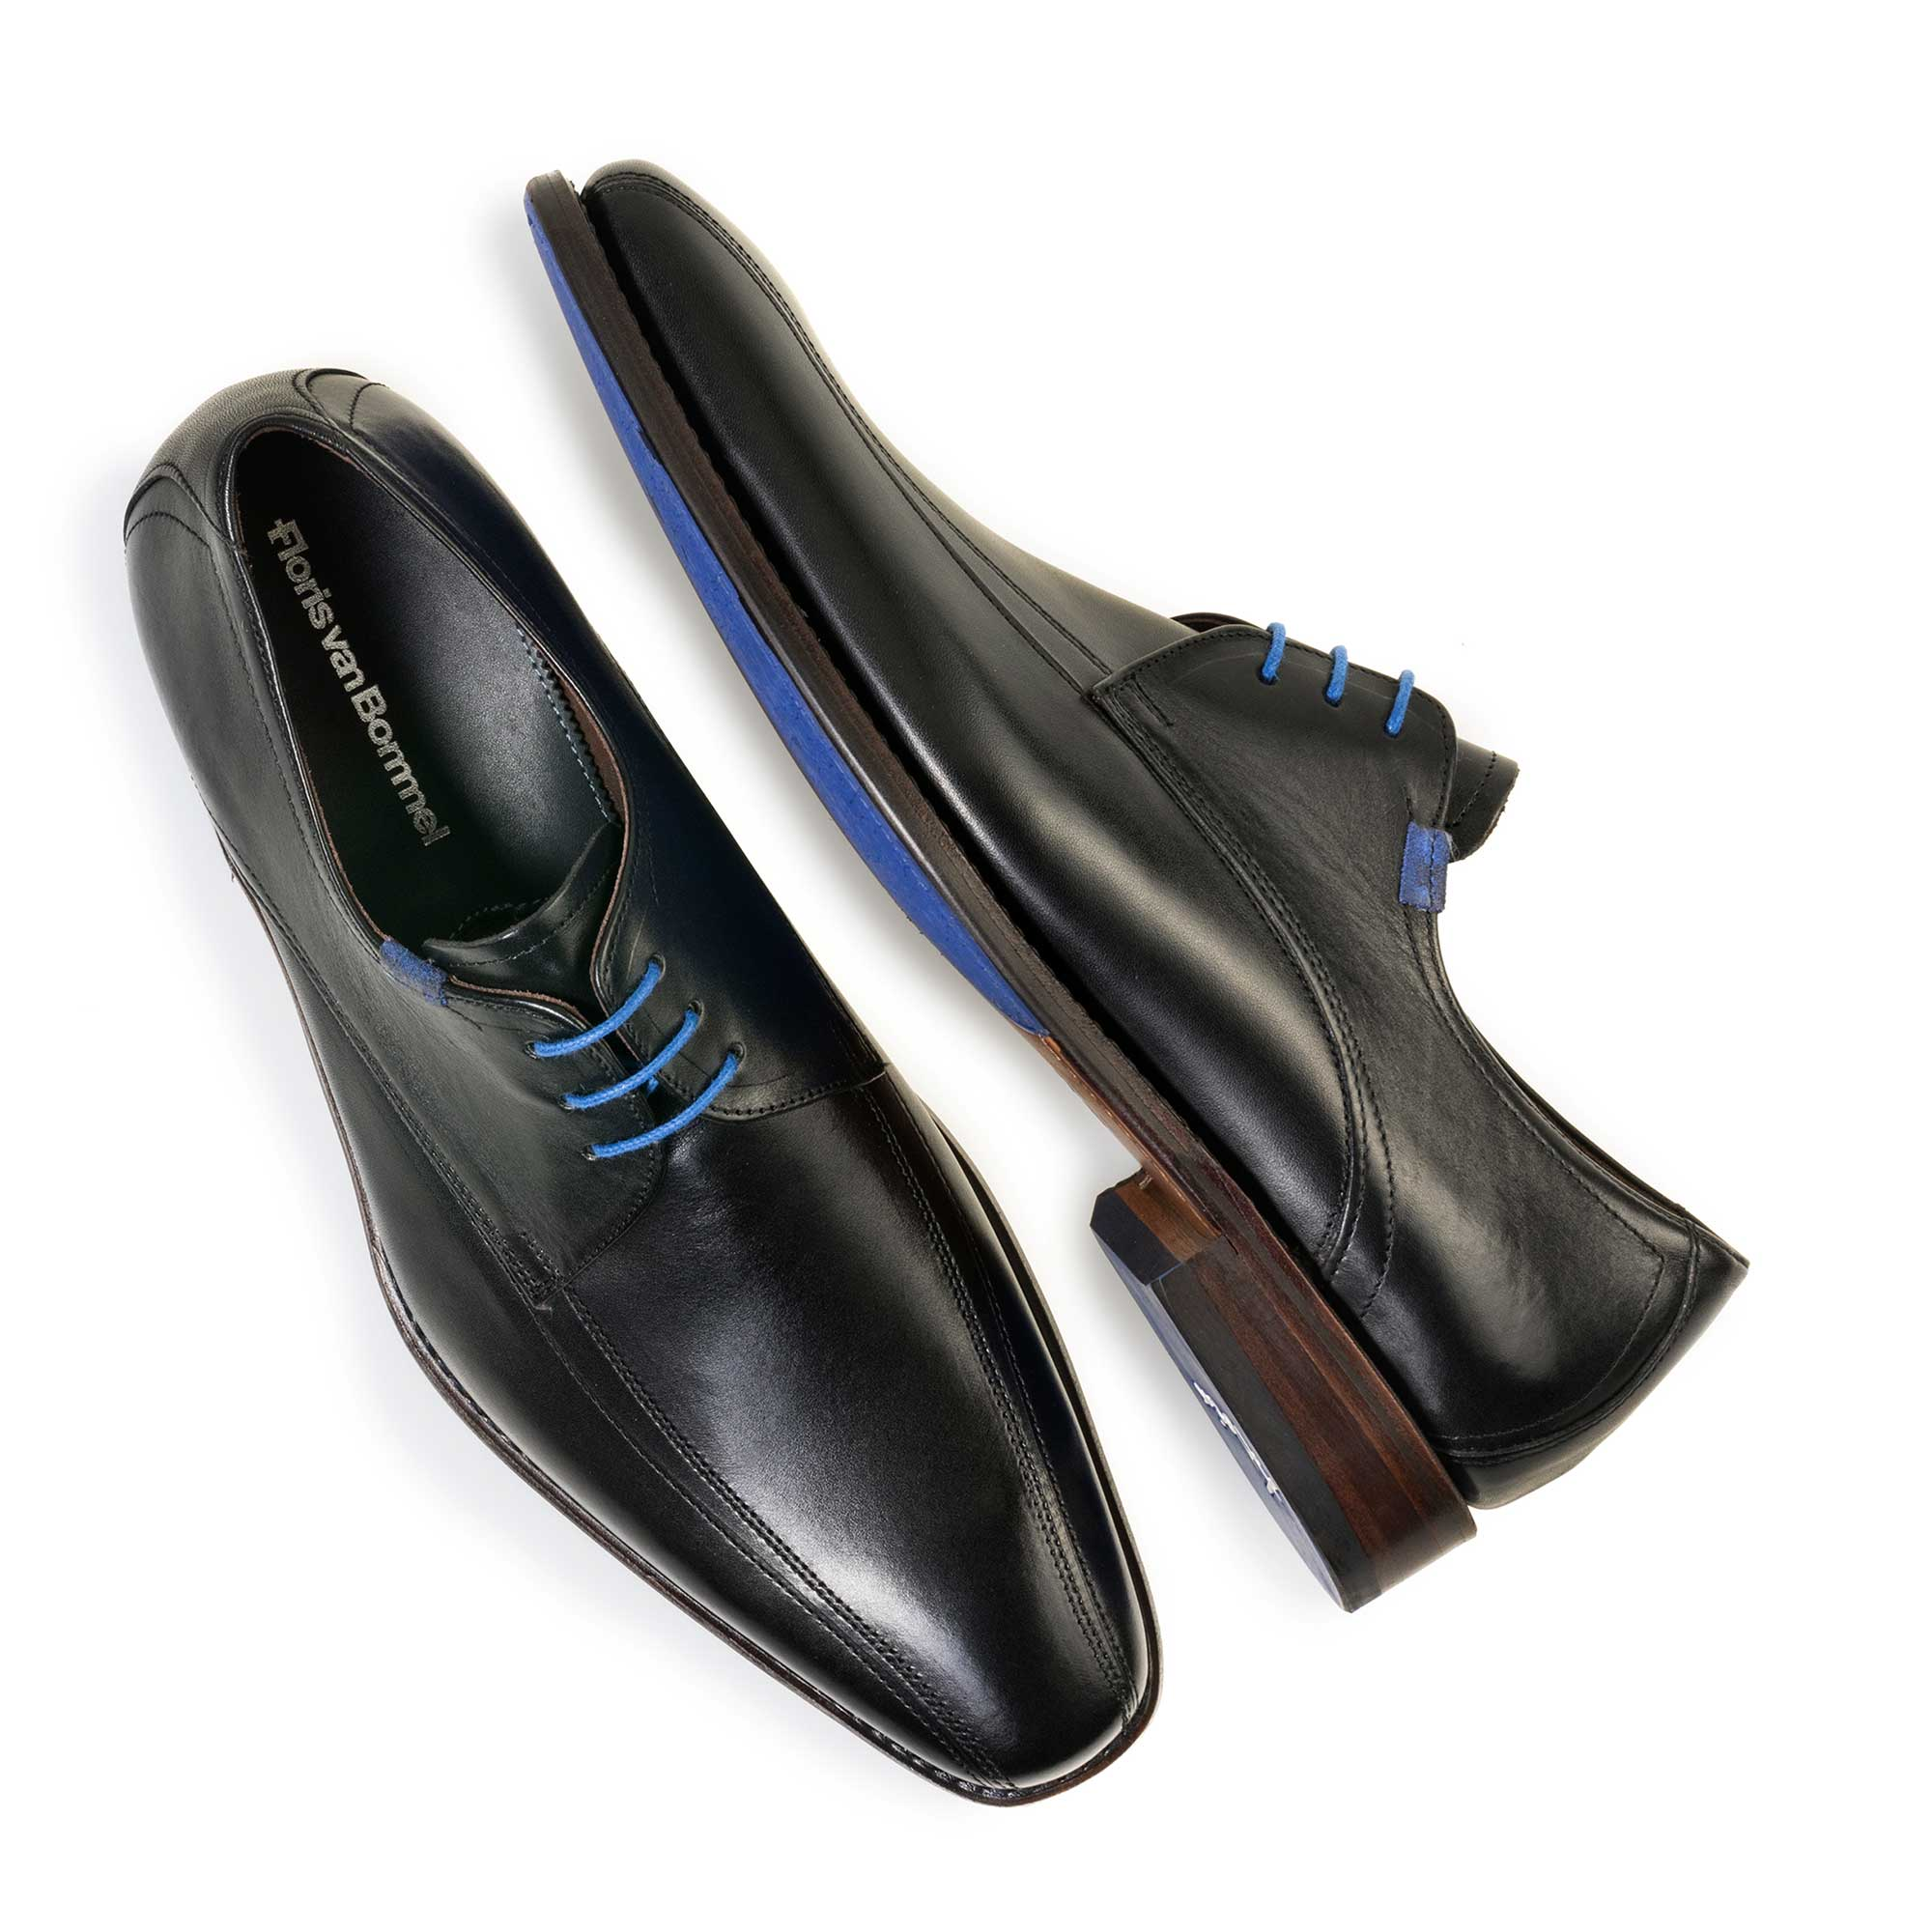 14470/01 - Black calf's leather lace shoe